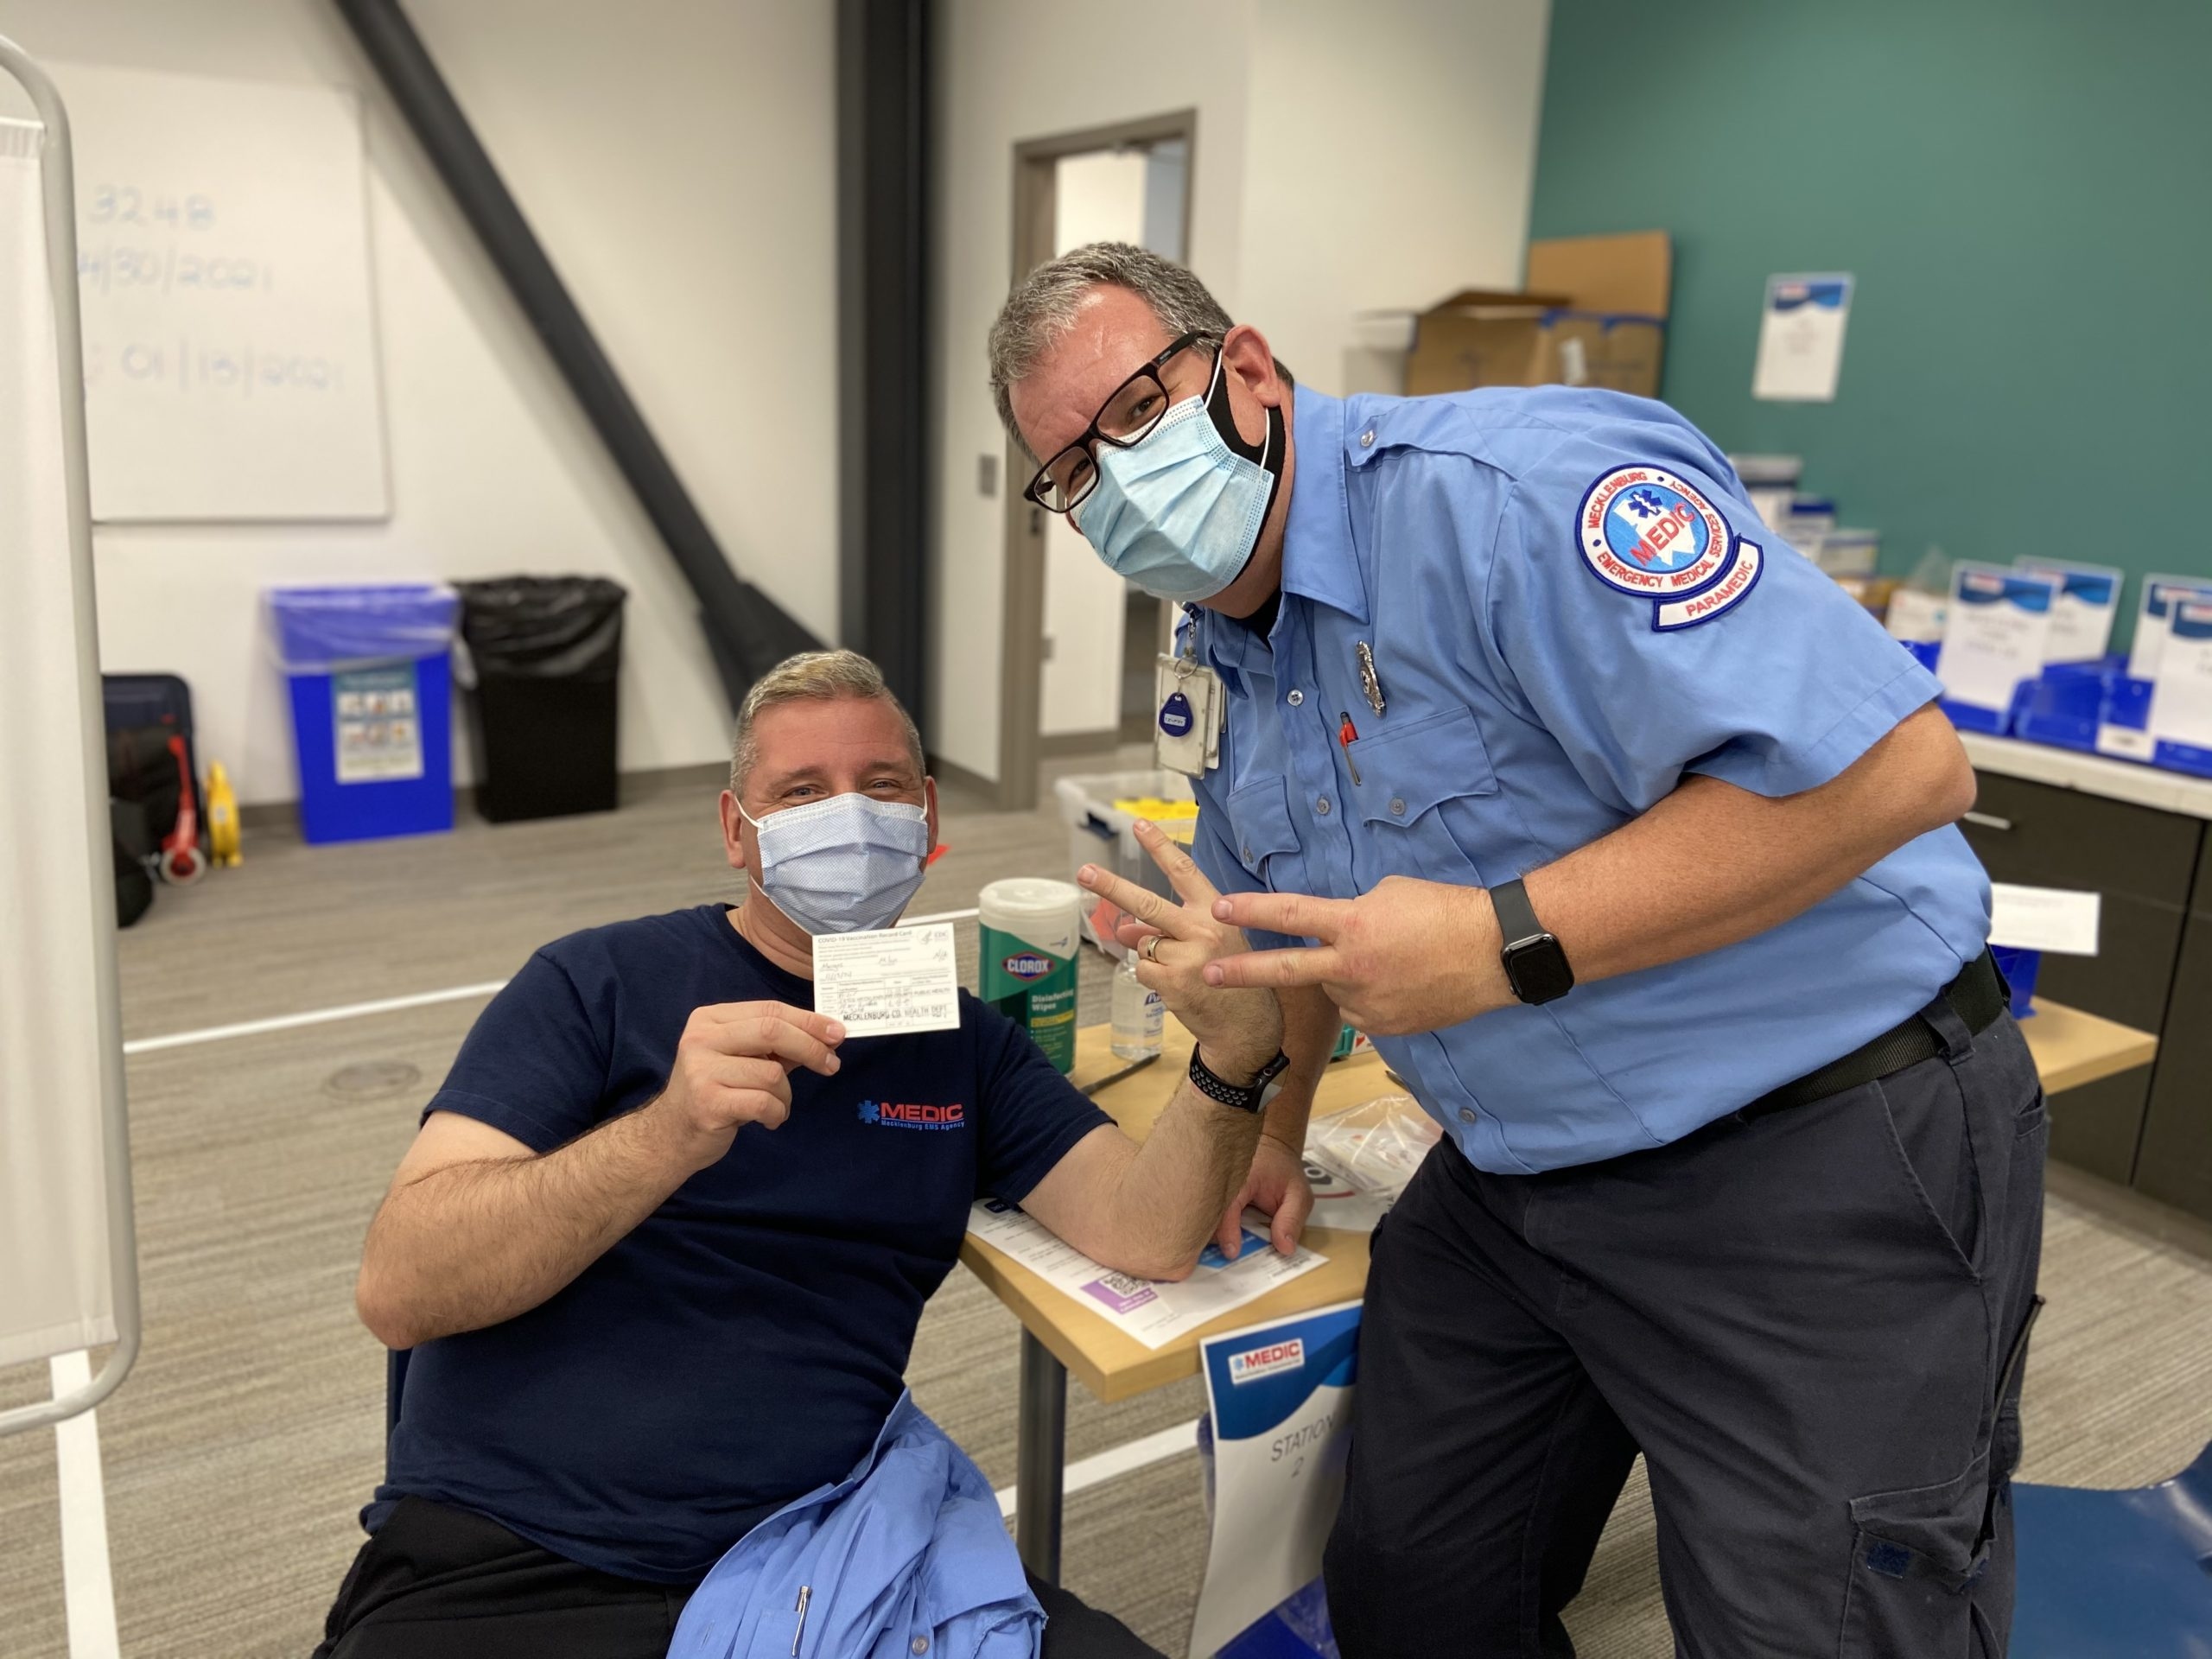 The Charlotte Observer: Medic joins County's Vaccination Team